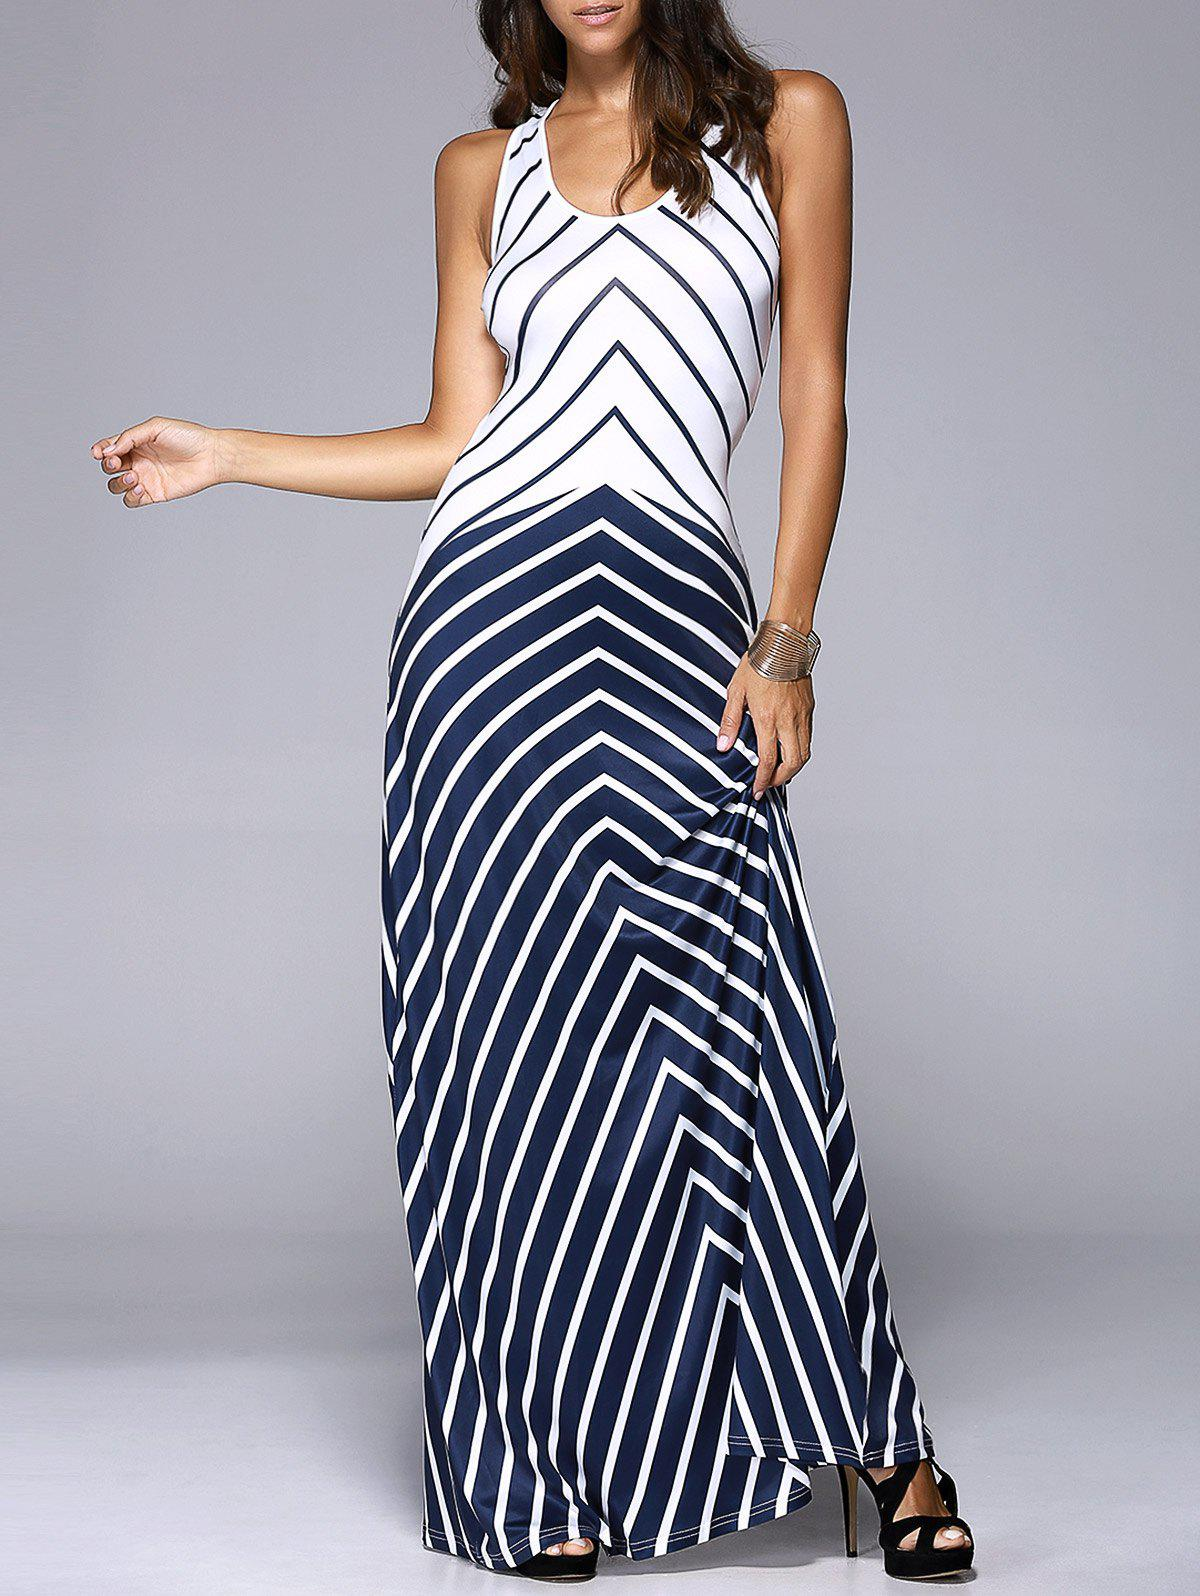 Women's Slimming U-Neck Cut Out Chevron Tank Maxi Dress - PURPLISHBLUE / WHITE XL